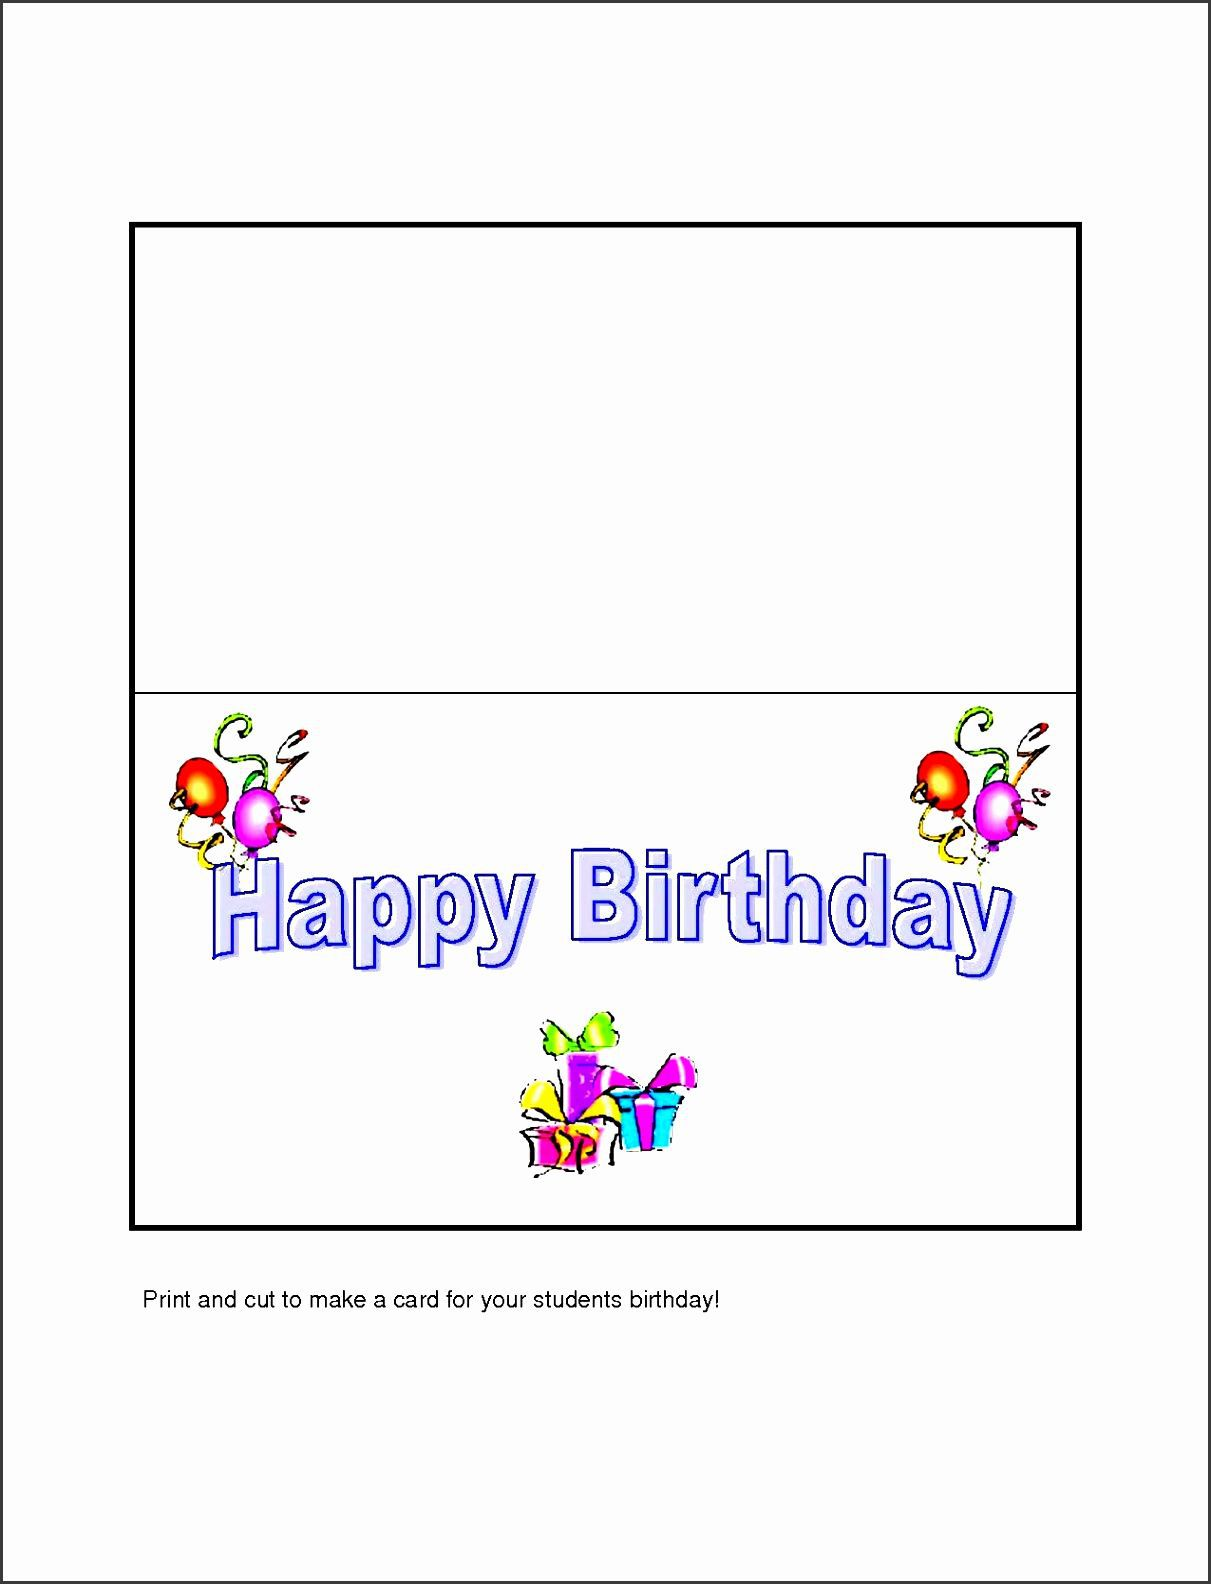 009 Top Microsoft Word Card Template Picture  Birthday Download Busines FreeFull